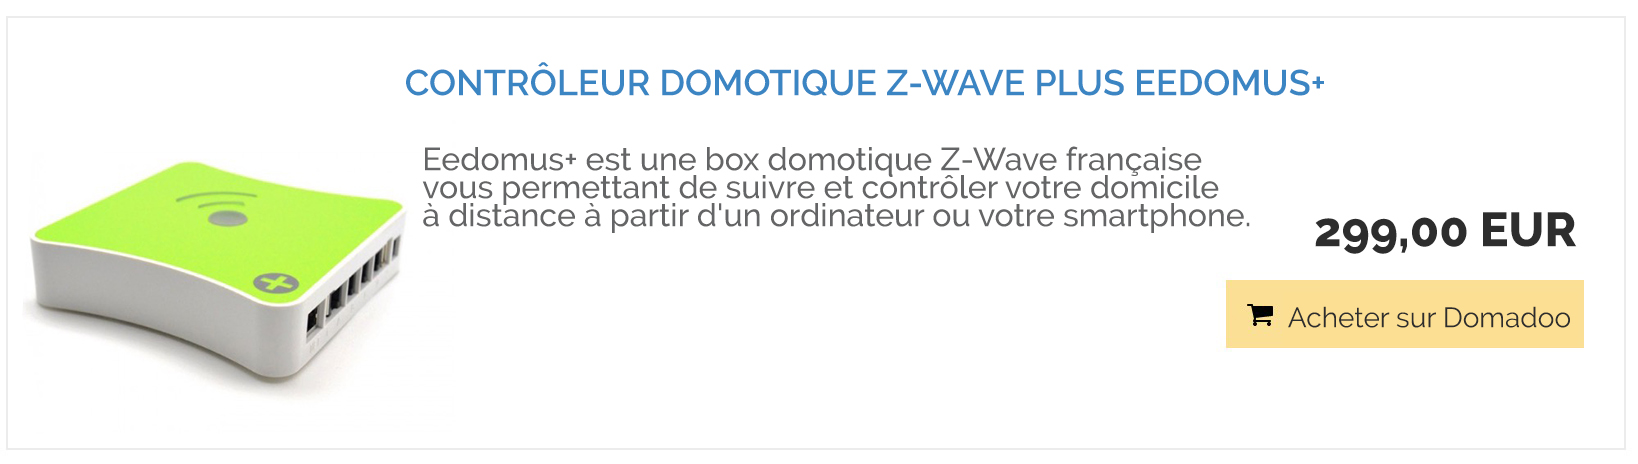 eedomus-plus-box-domotique-zwave-domadoo